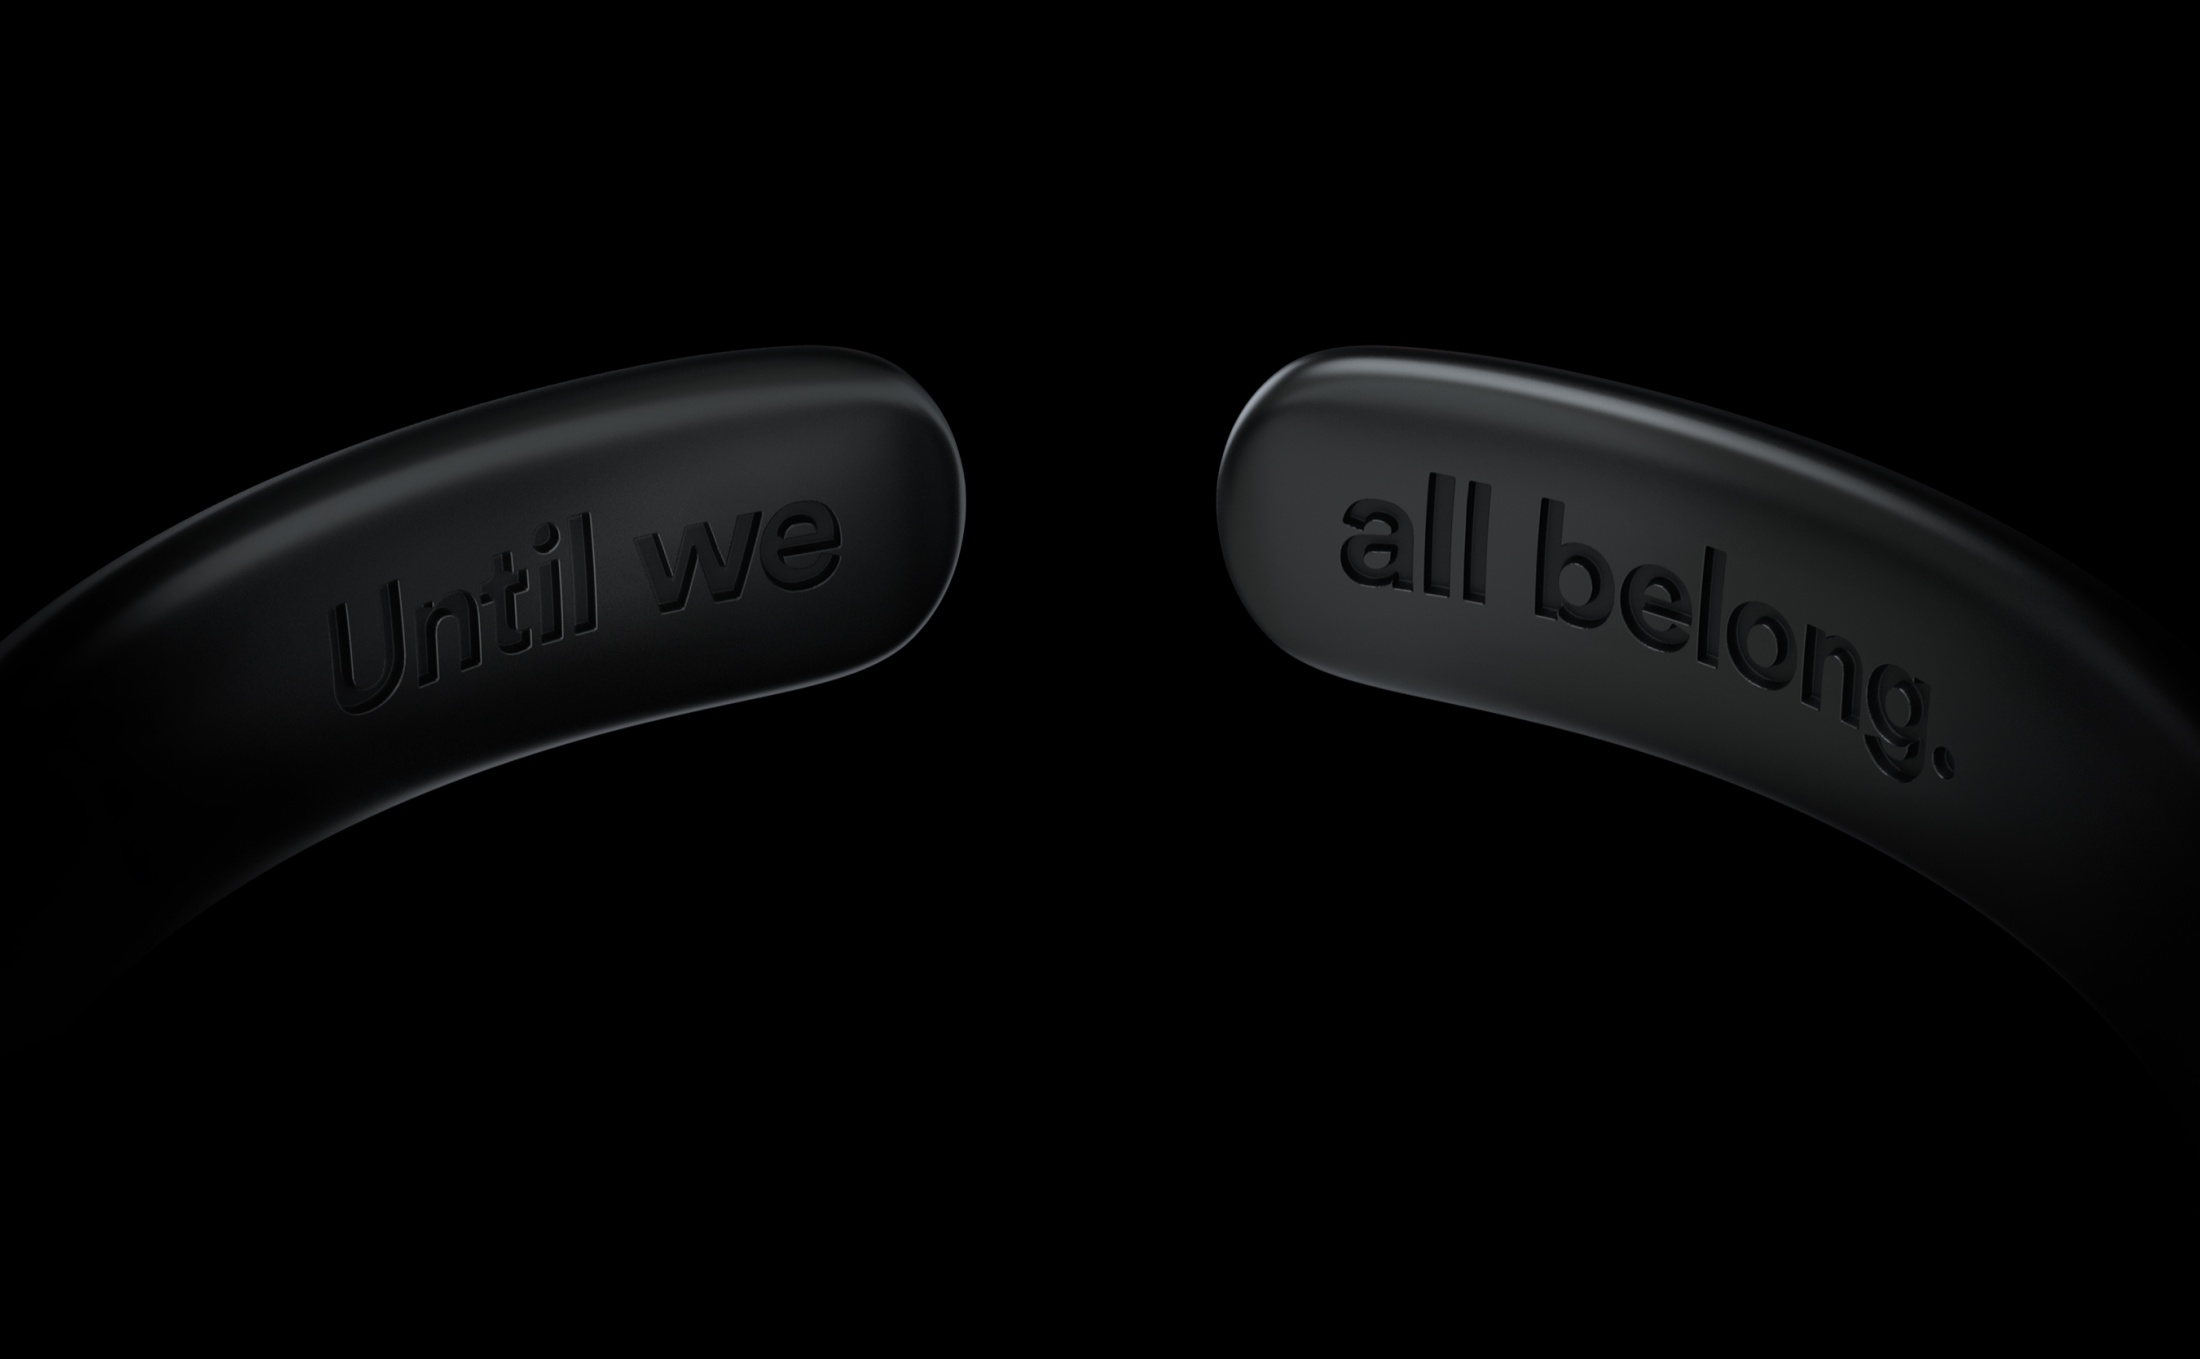 Image Media for Until We All Belong